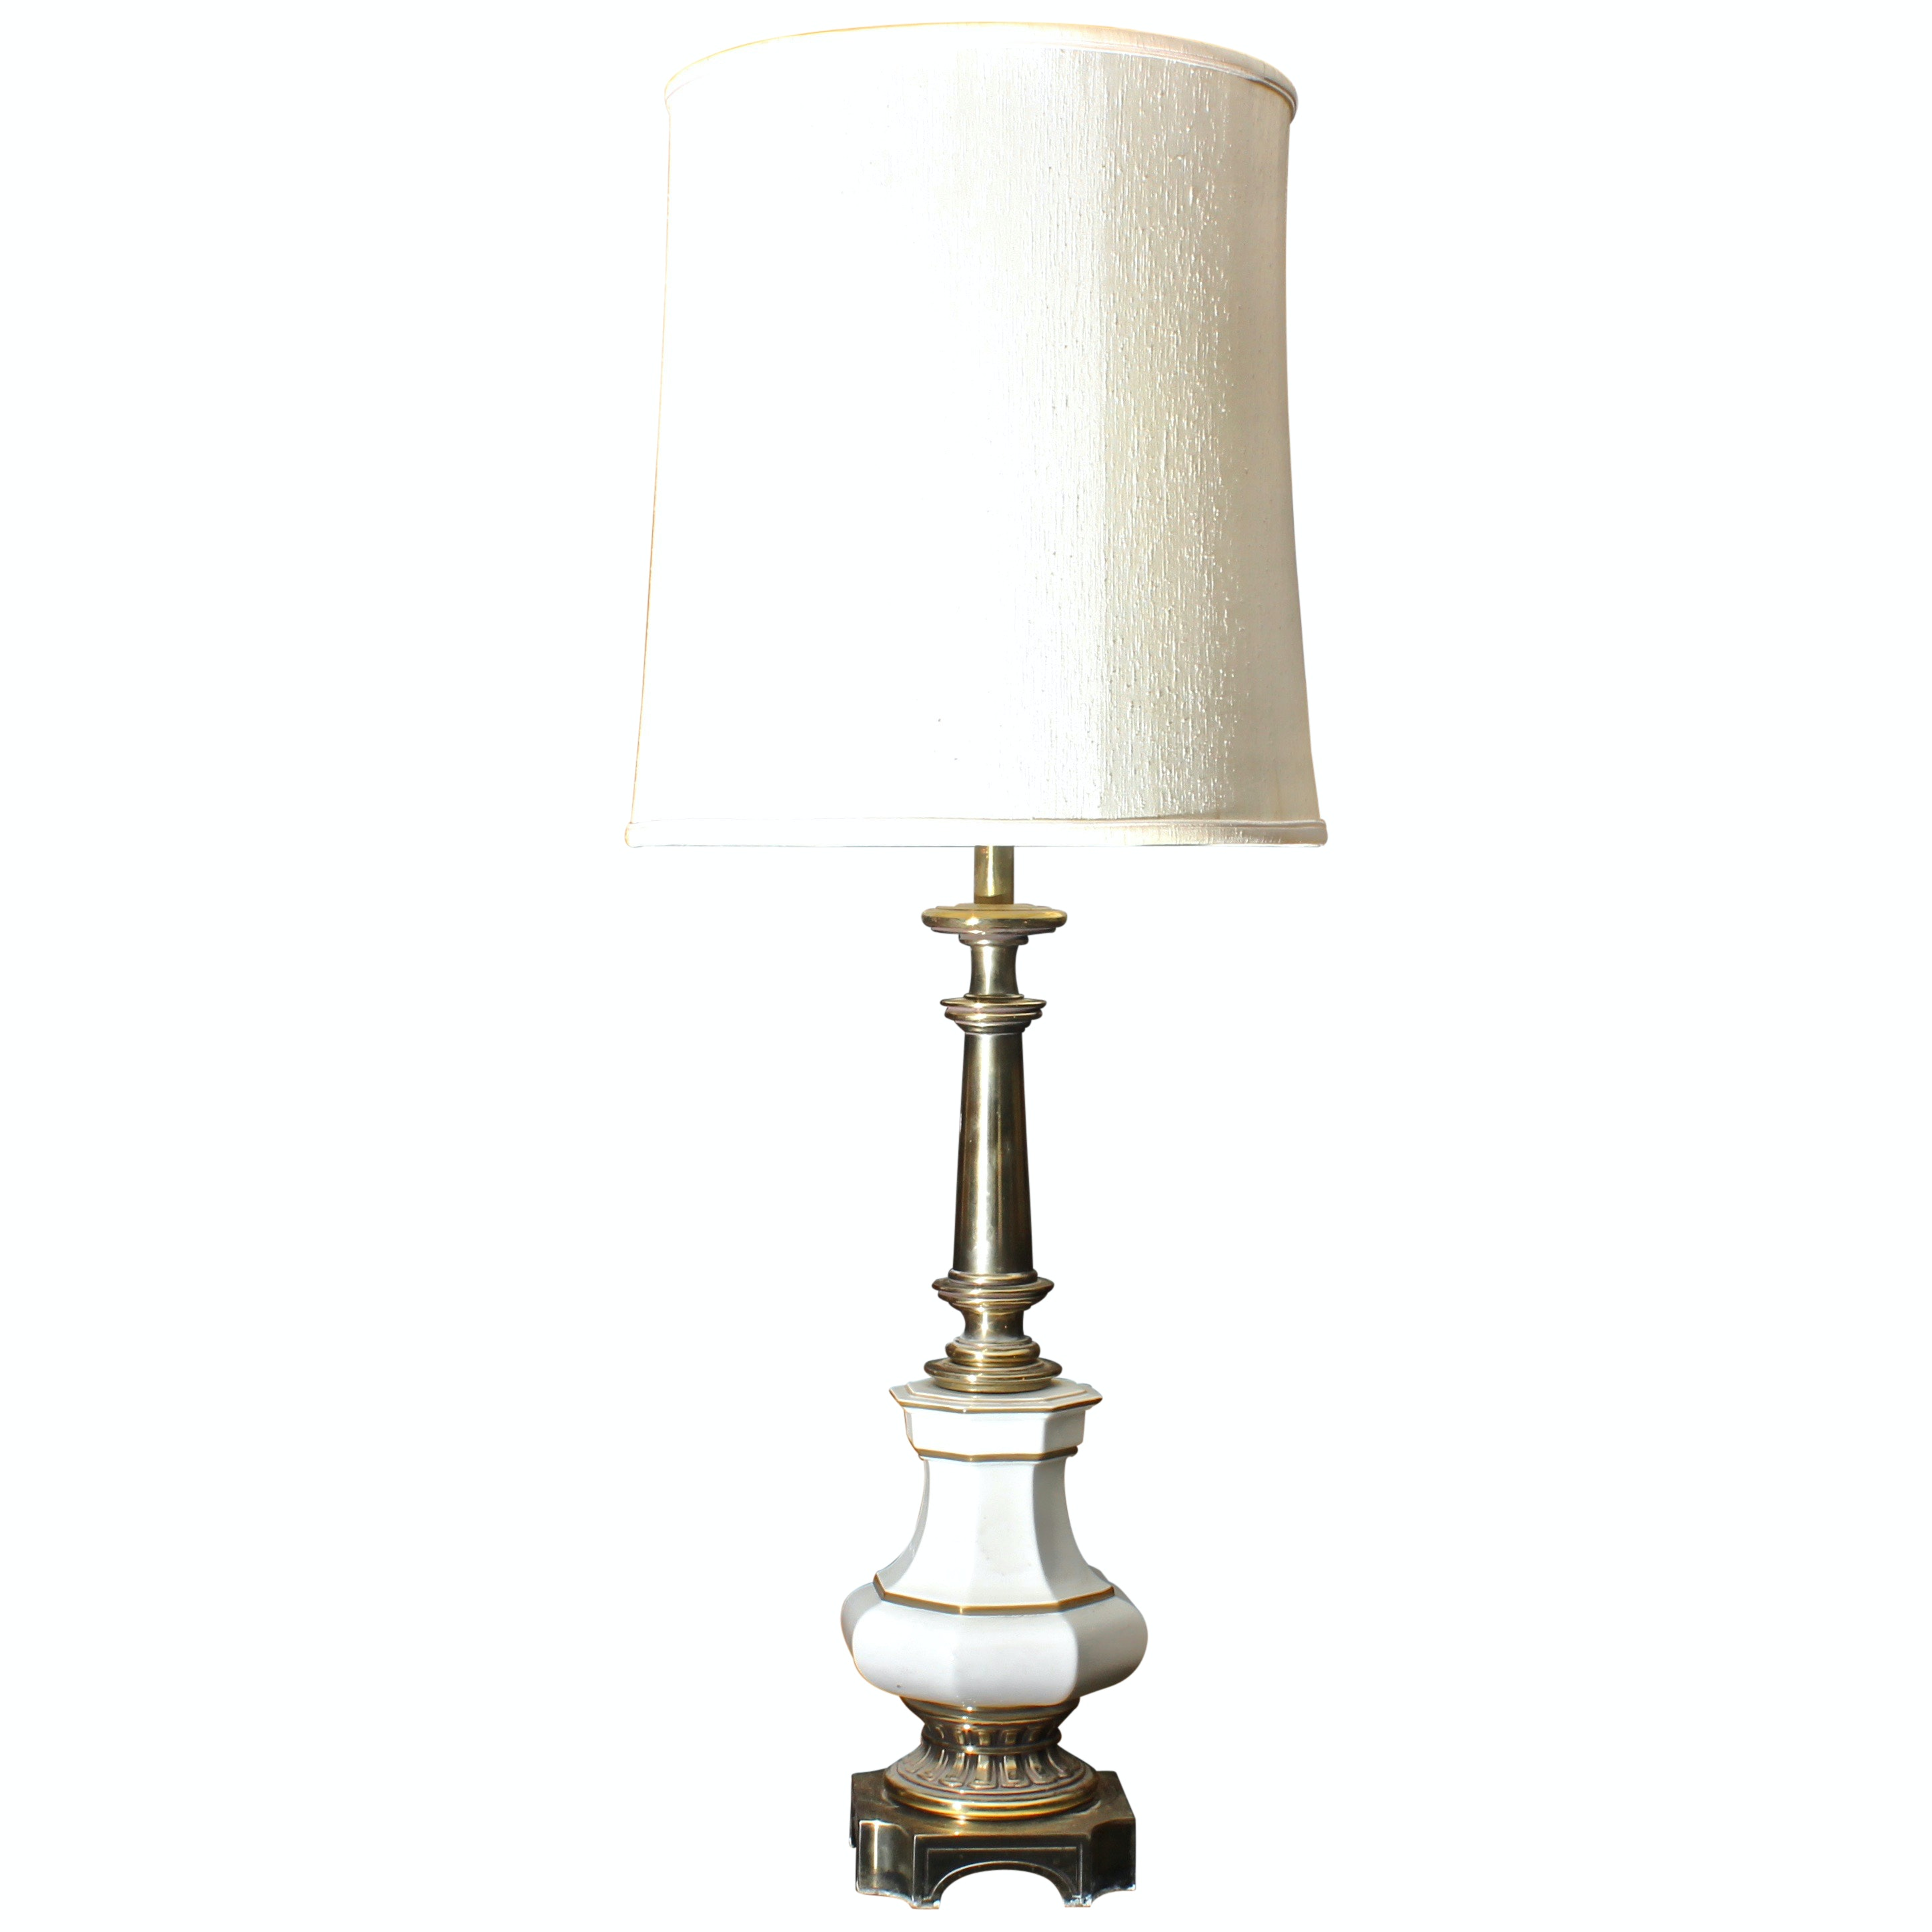 Vintage Porcelain And Brass Table Lamp